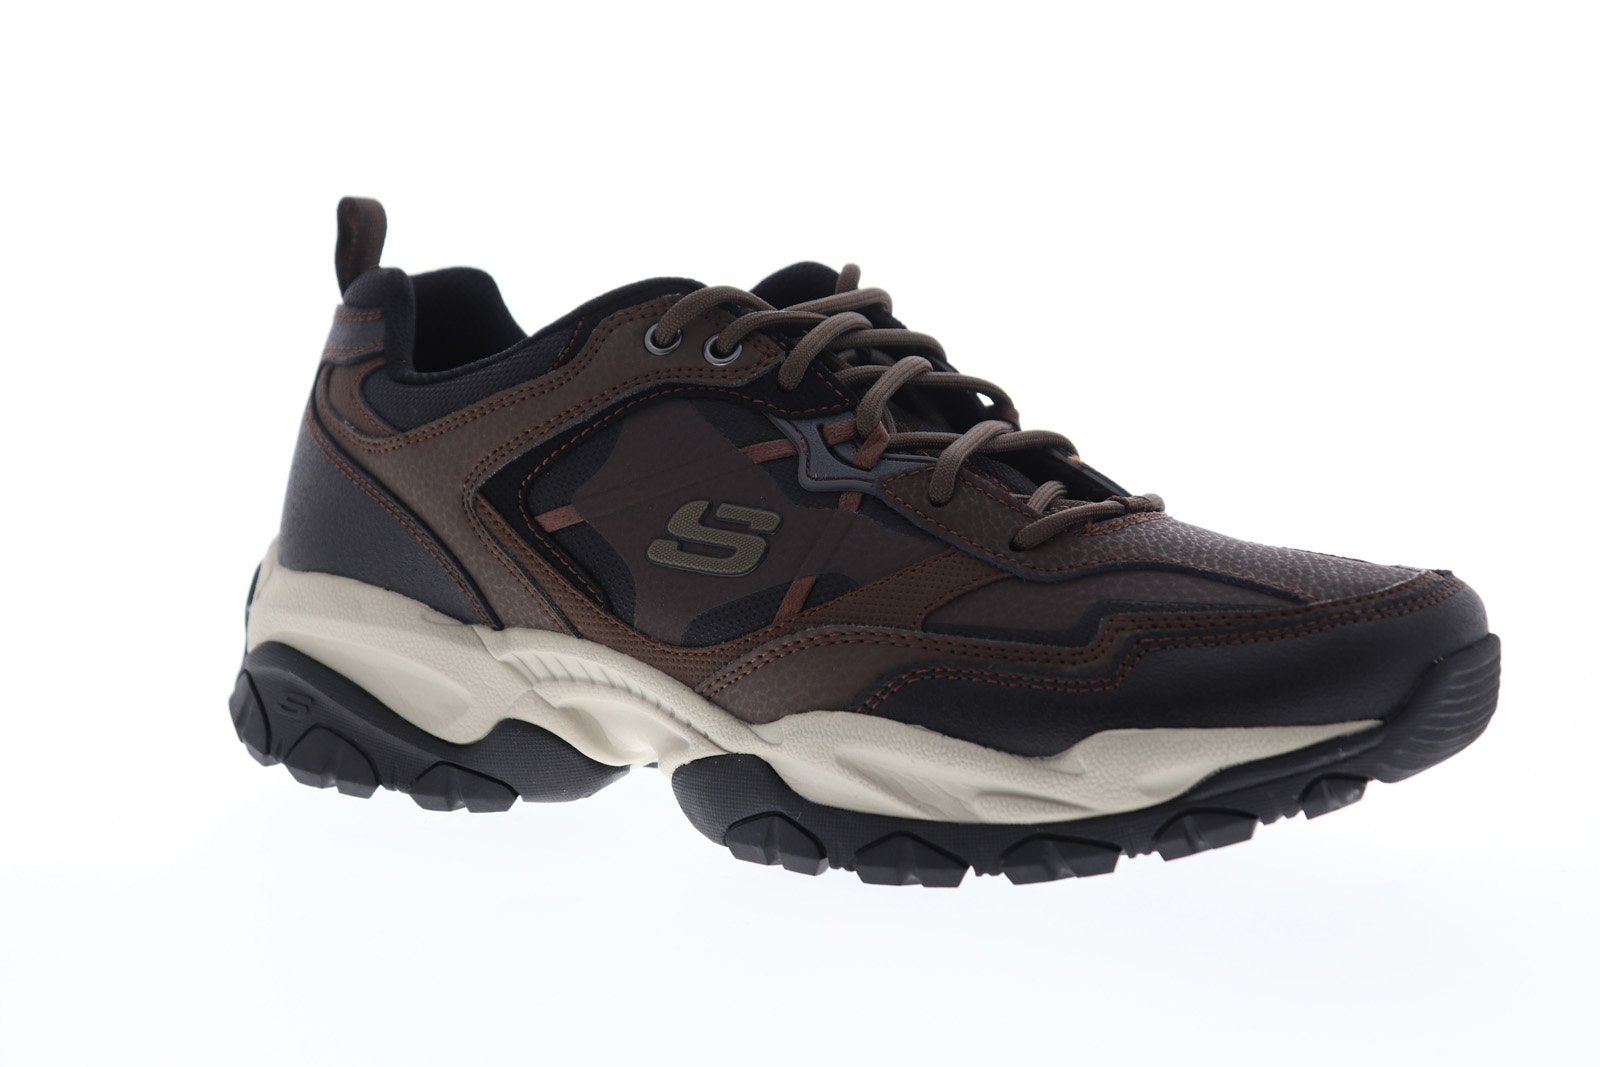 Skechers Sparta 2.0 Tr 52700 Mens Brown Leather Casual Low Top Sneakers Shoes